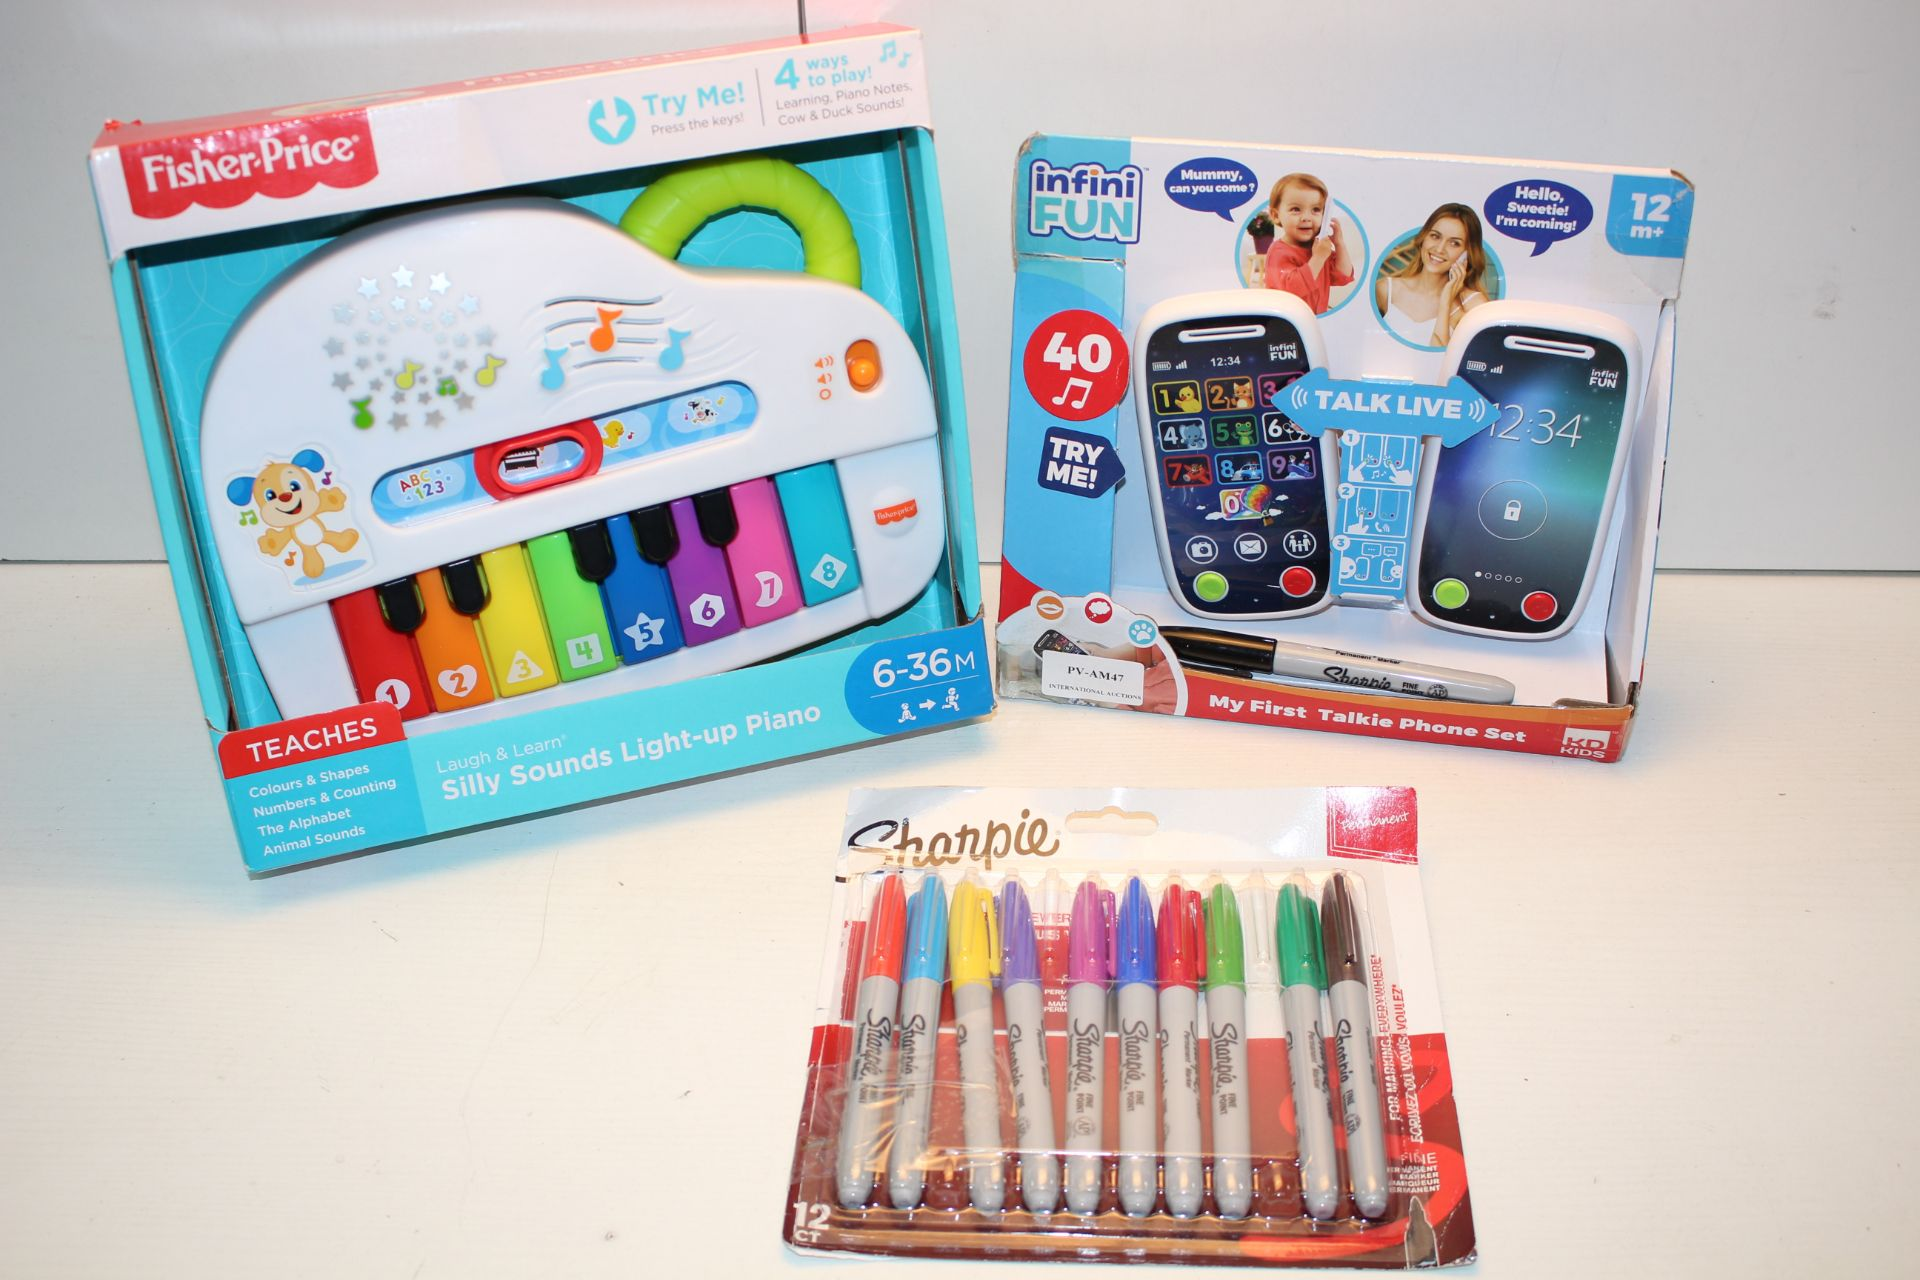 3X ASSORTED ITEMS TO INCLUDE FISHER PRICE SILLY SOUNDS LIGHT-UP PIANO & OTHER (IMAGE DEPICTS STOCK)